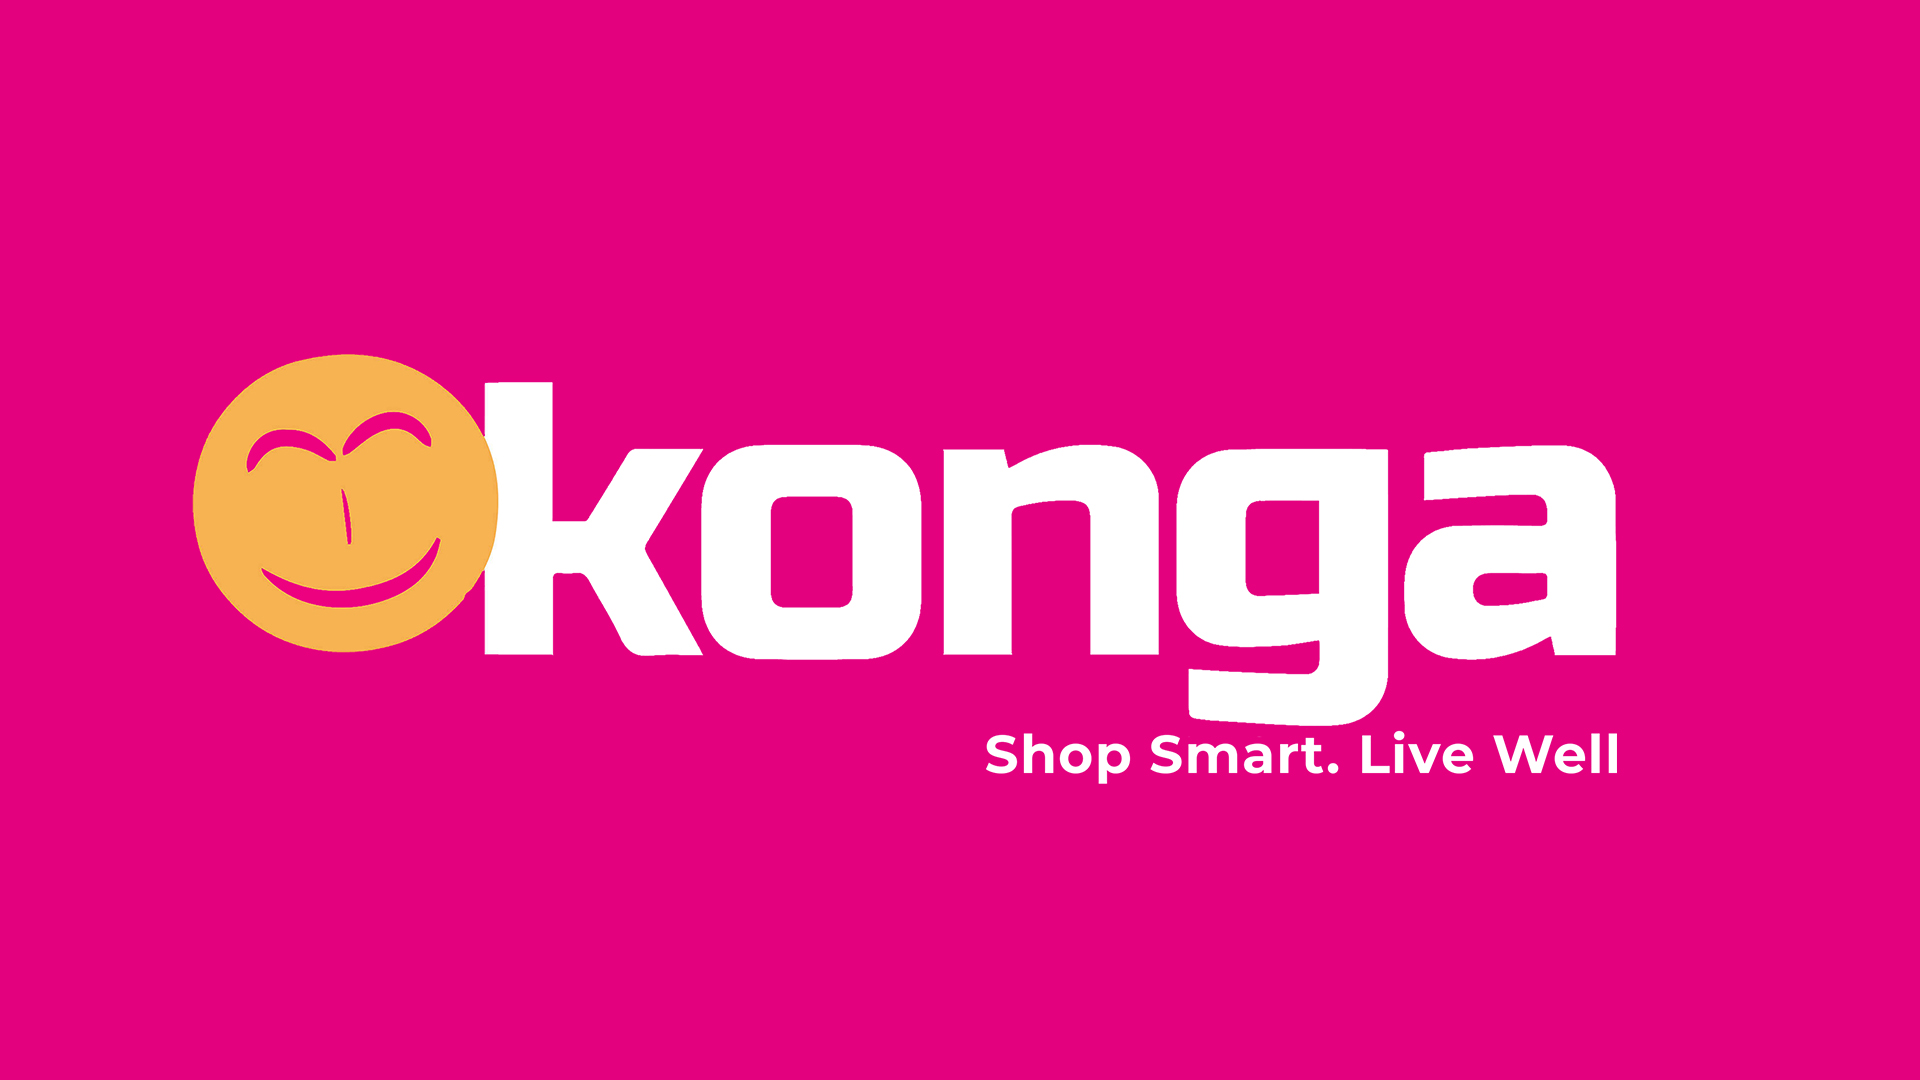 E-commerce firm, Konga to reduce cost of health service delivery